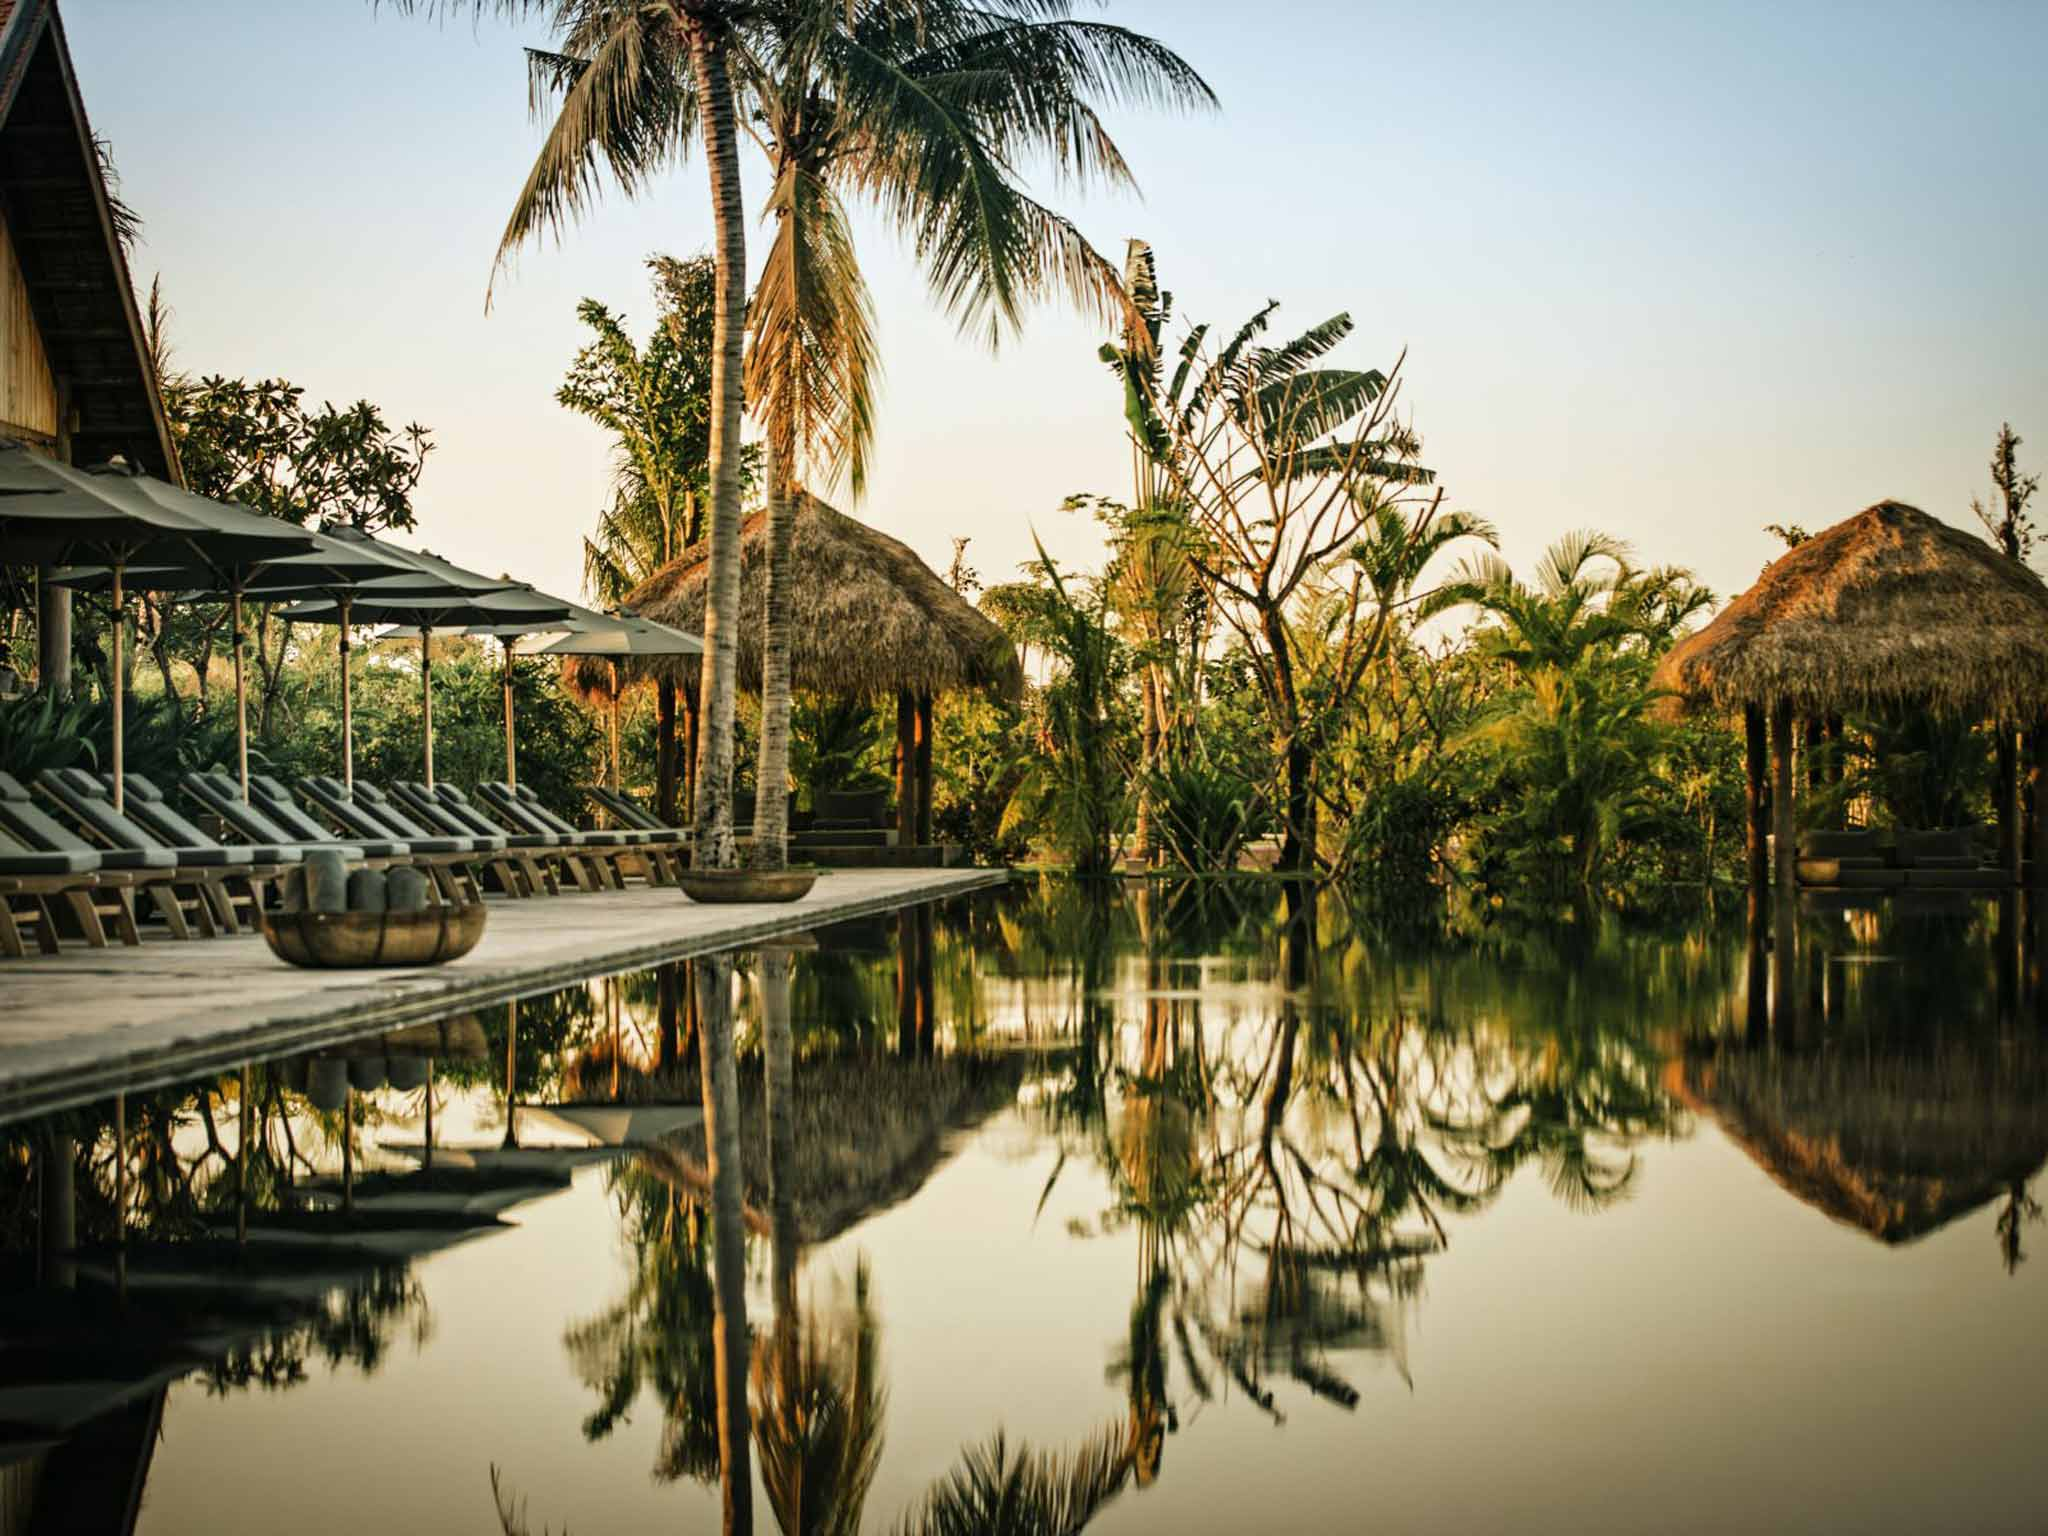 Phum Baitang, Siem Reap, Cambodia - hotel review: Enjoy a luxury welcome to the jungle